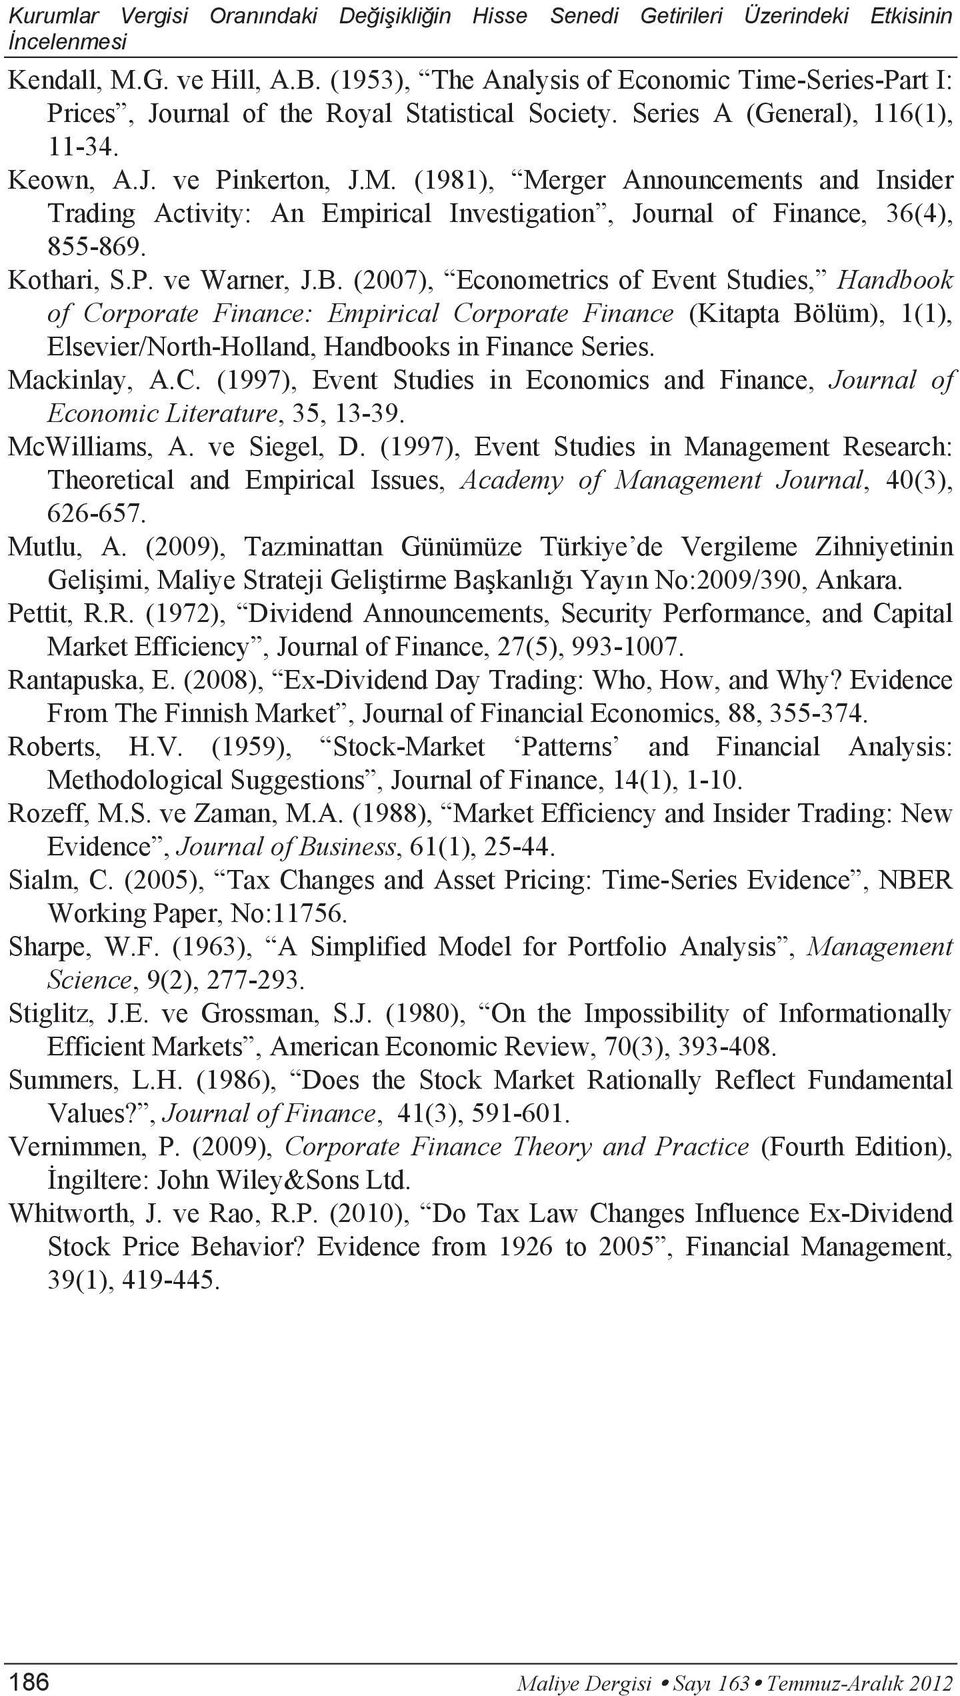 (2007), Econometrics of Event Studies, Handbook of Corporate Finance: Empirical Corporate Finance (Kitapta Bölüm), 1(1), Elsevier/North-Holland, Handbooks in Finance Series. Mackinlay, A.C. (1997), Event Studies in Economics and Finance, Journal of Economic Literature, 35, 13-39.